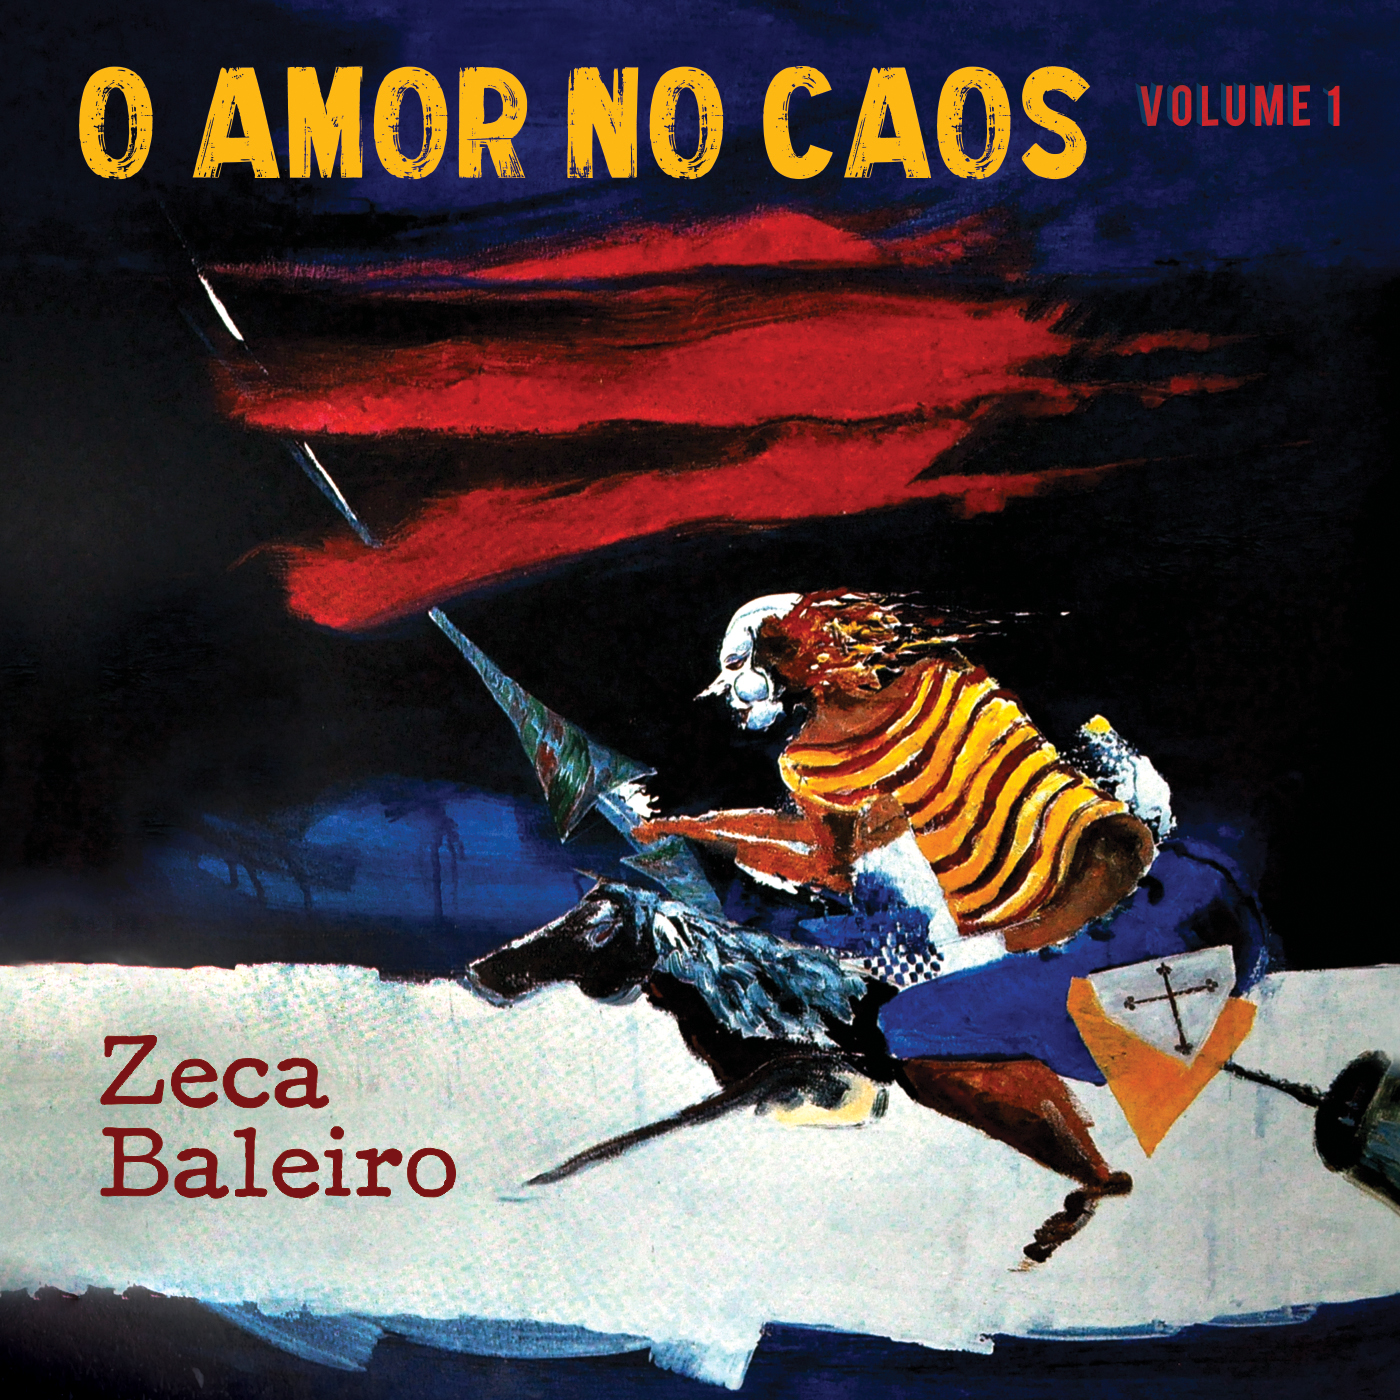 CD O Amor no Caos Vol 1